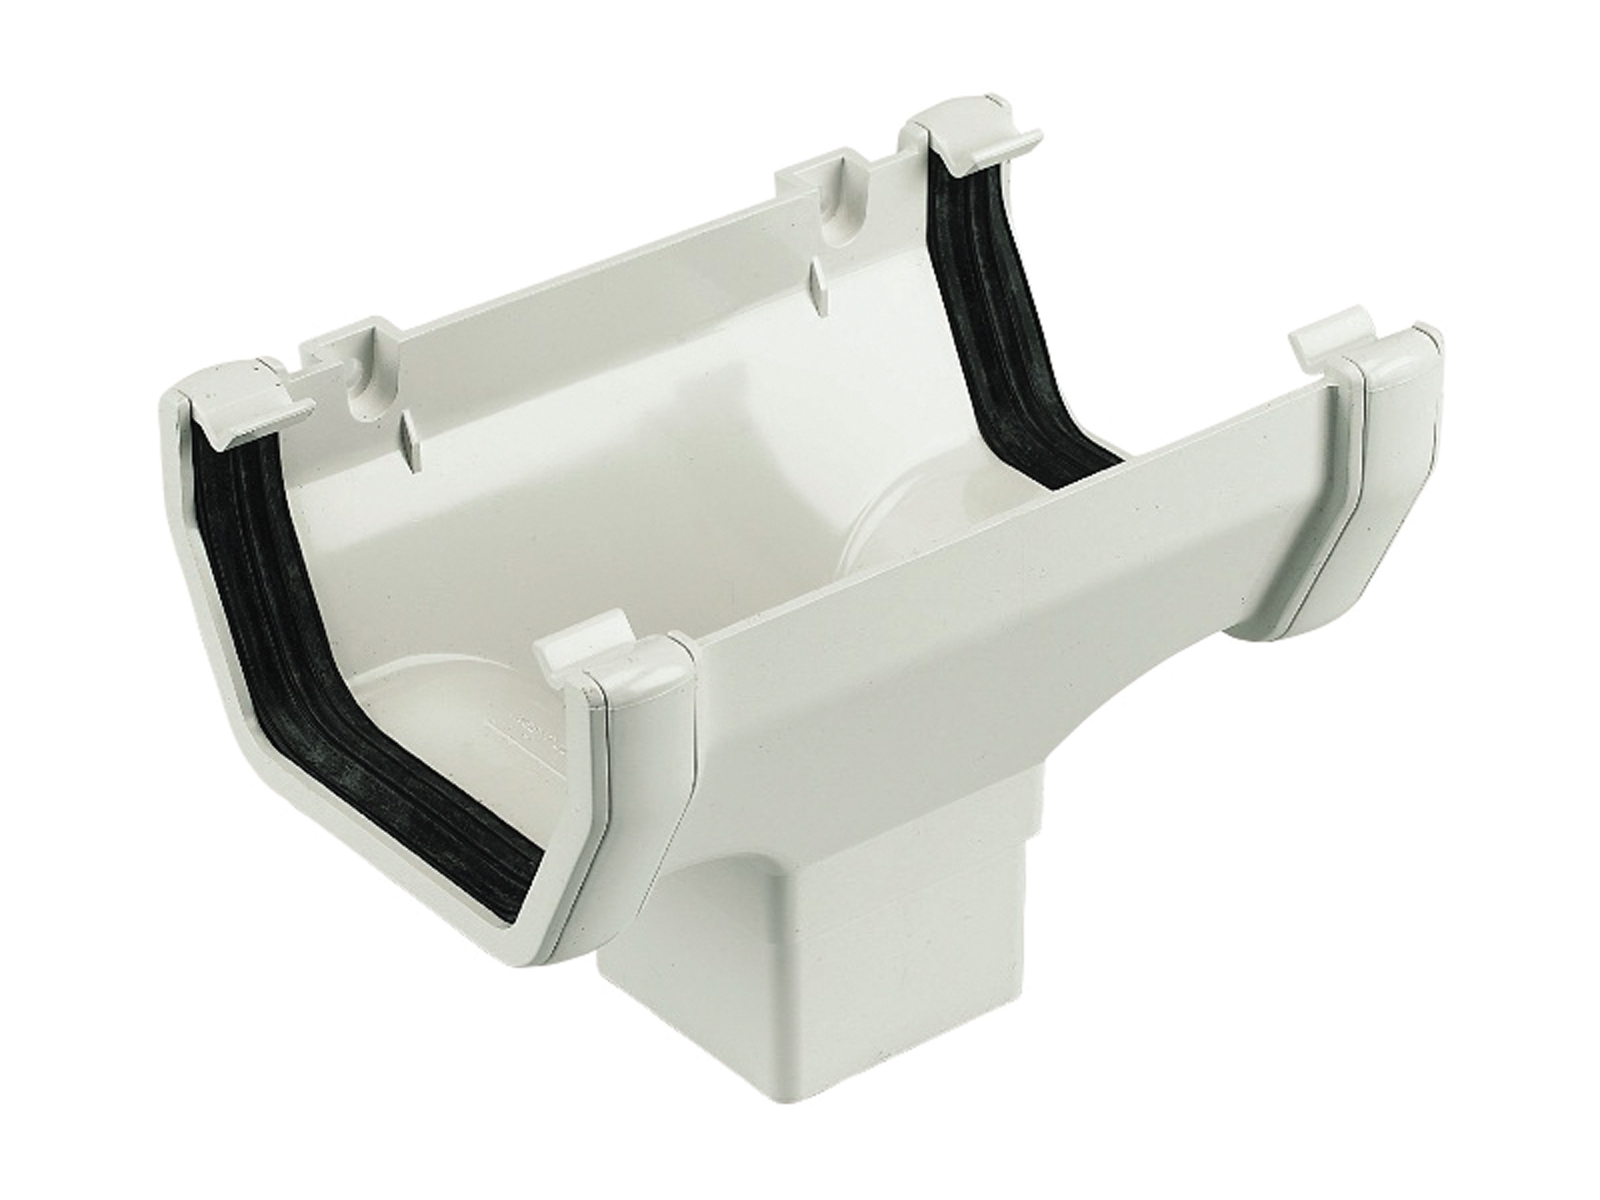 FLOPLAST SQUARE LINE GUTTER - ROS1 RUNNING OUTLET - WHITE